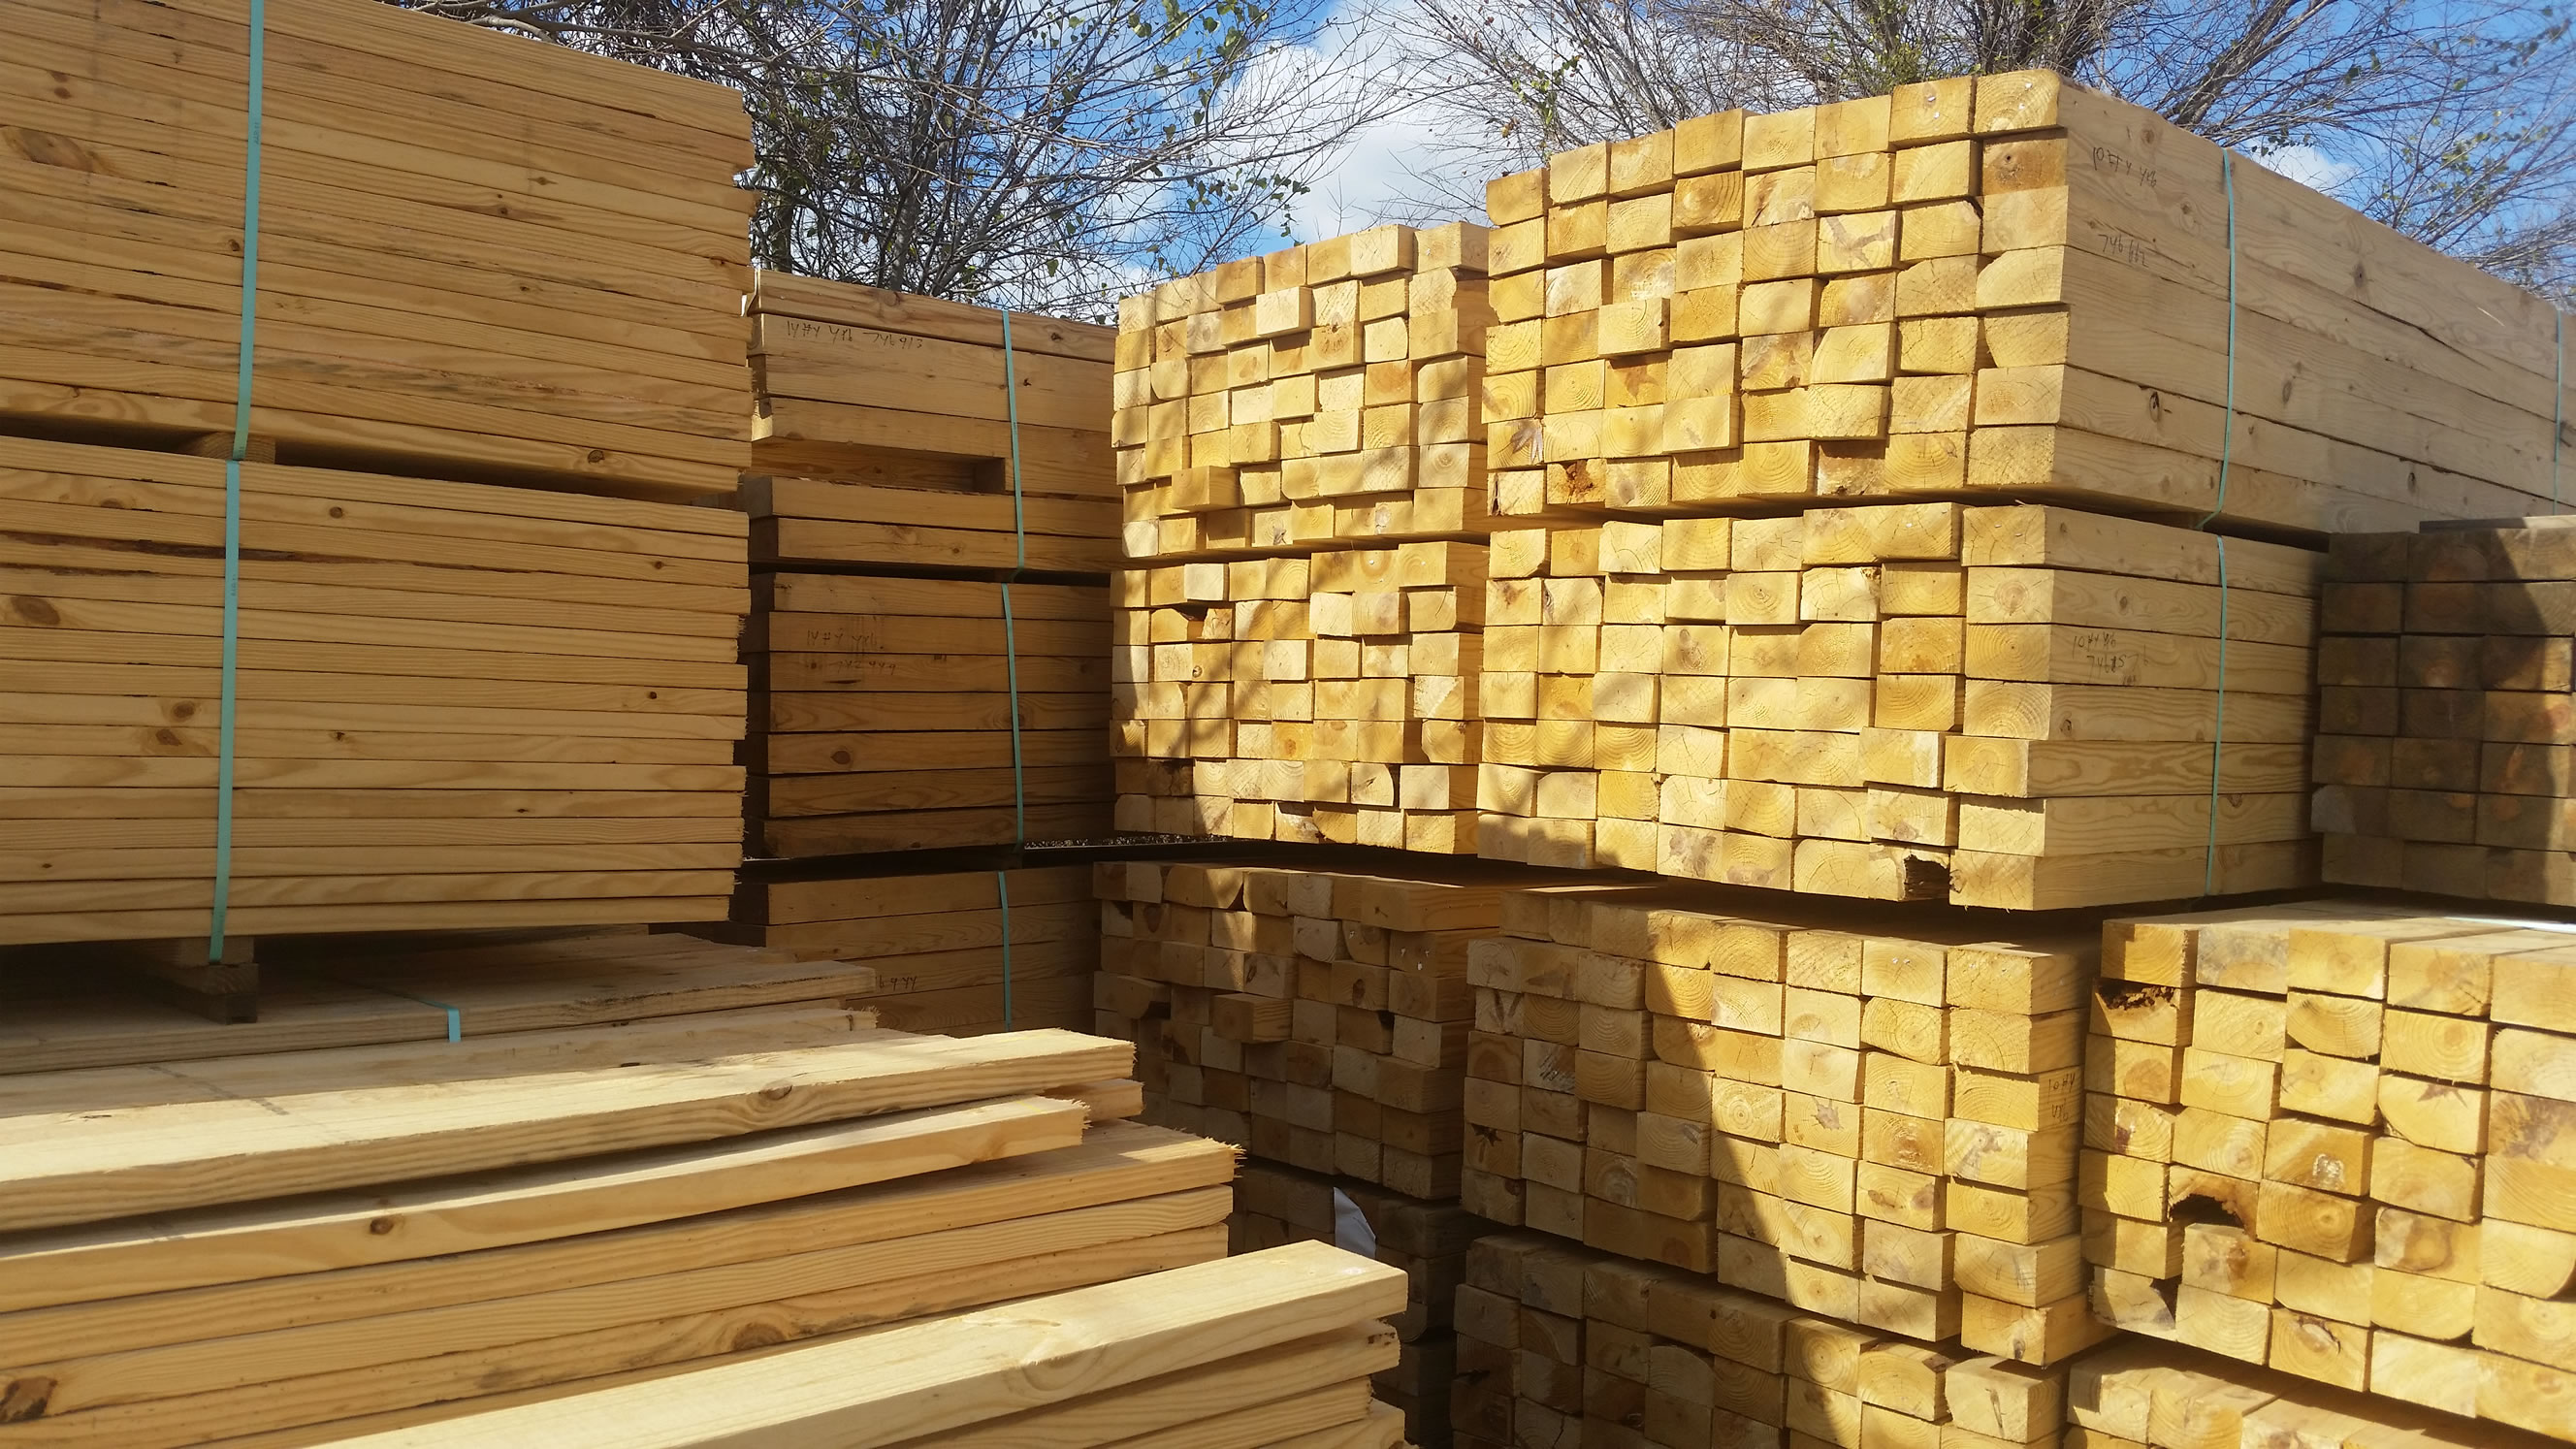 Lumber Yard located in Carlos carrying all building product needed for home improvement or new construction. From Simpson joist hangers to decking, we have every wood product needed for the home improvement project.